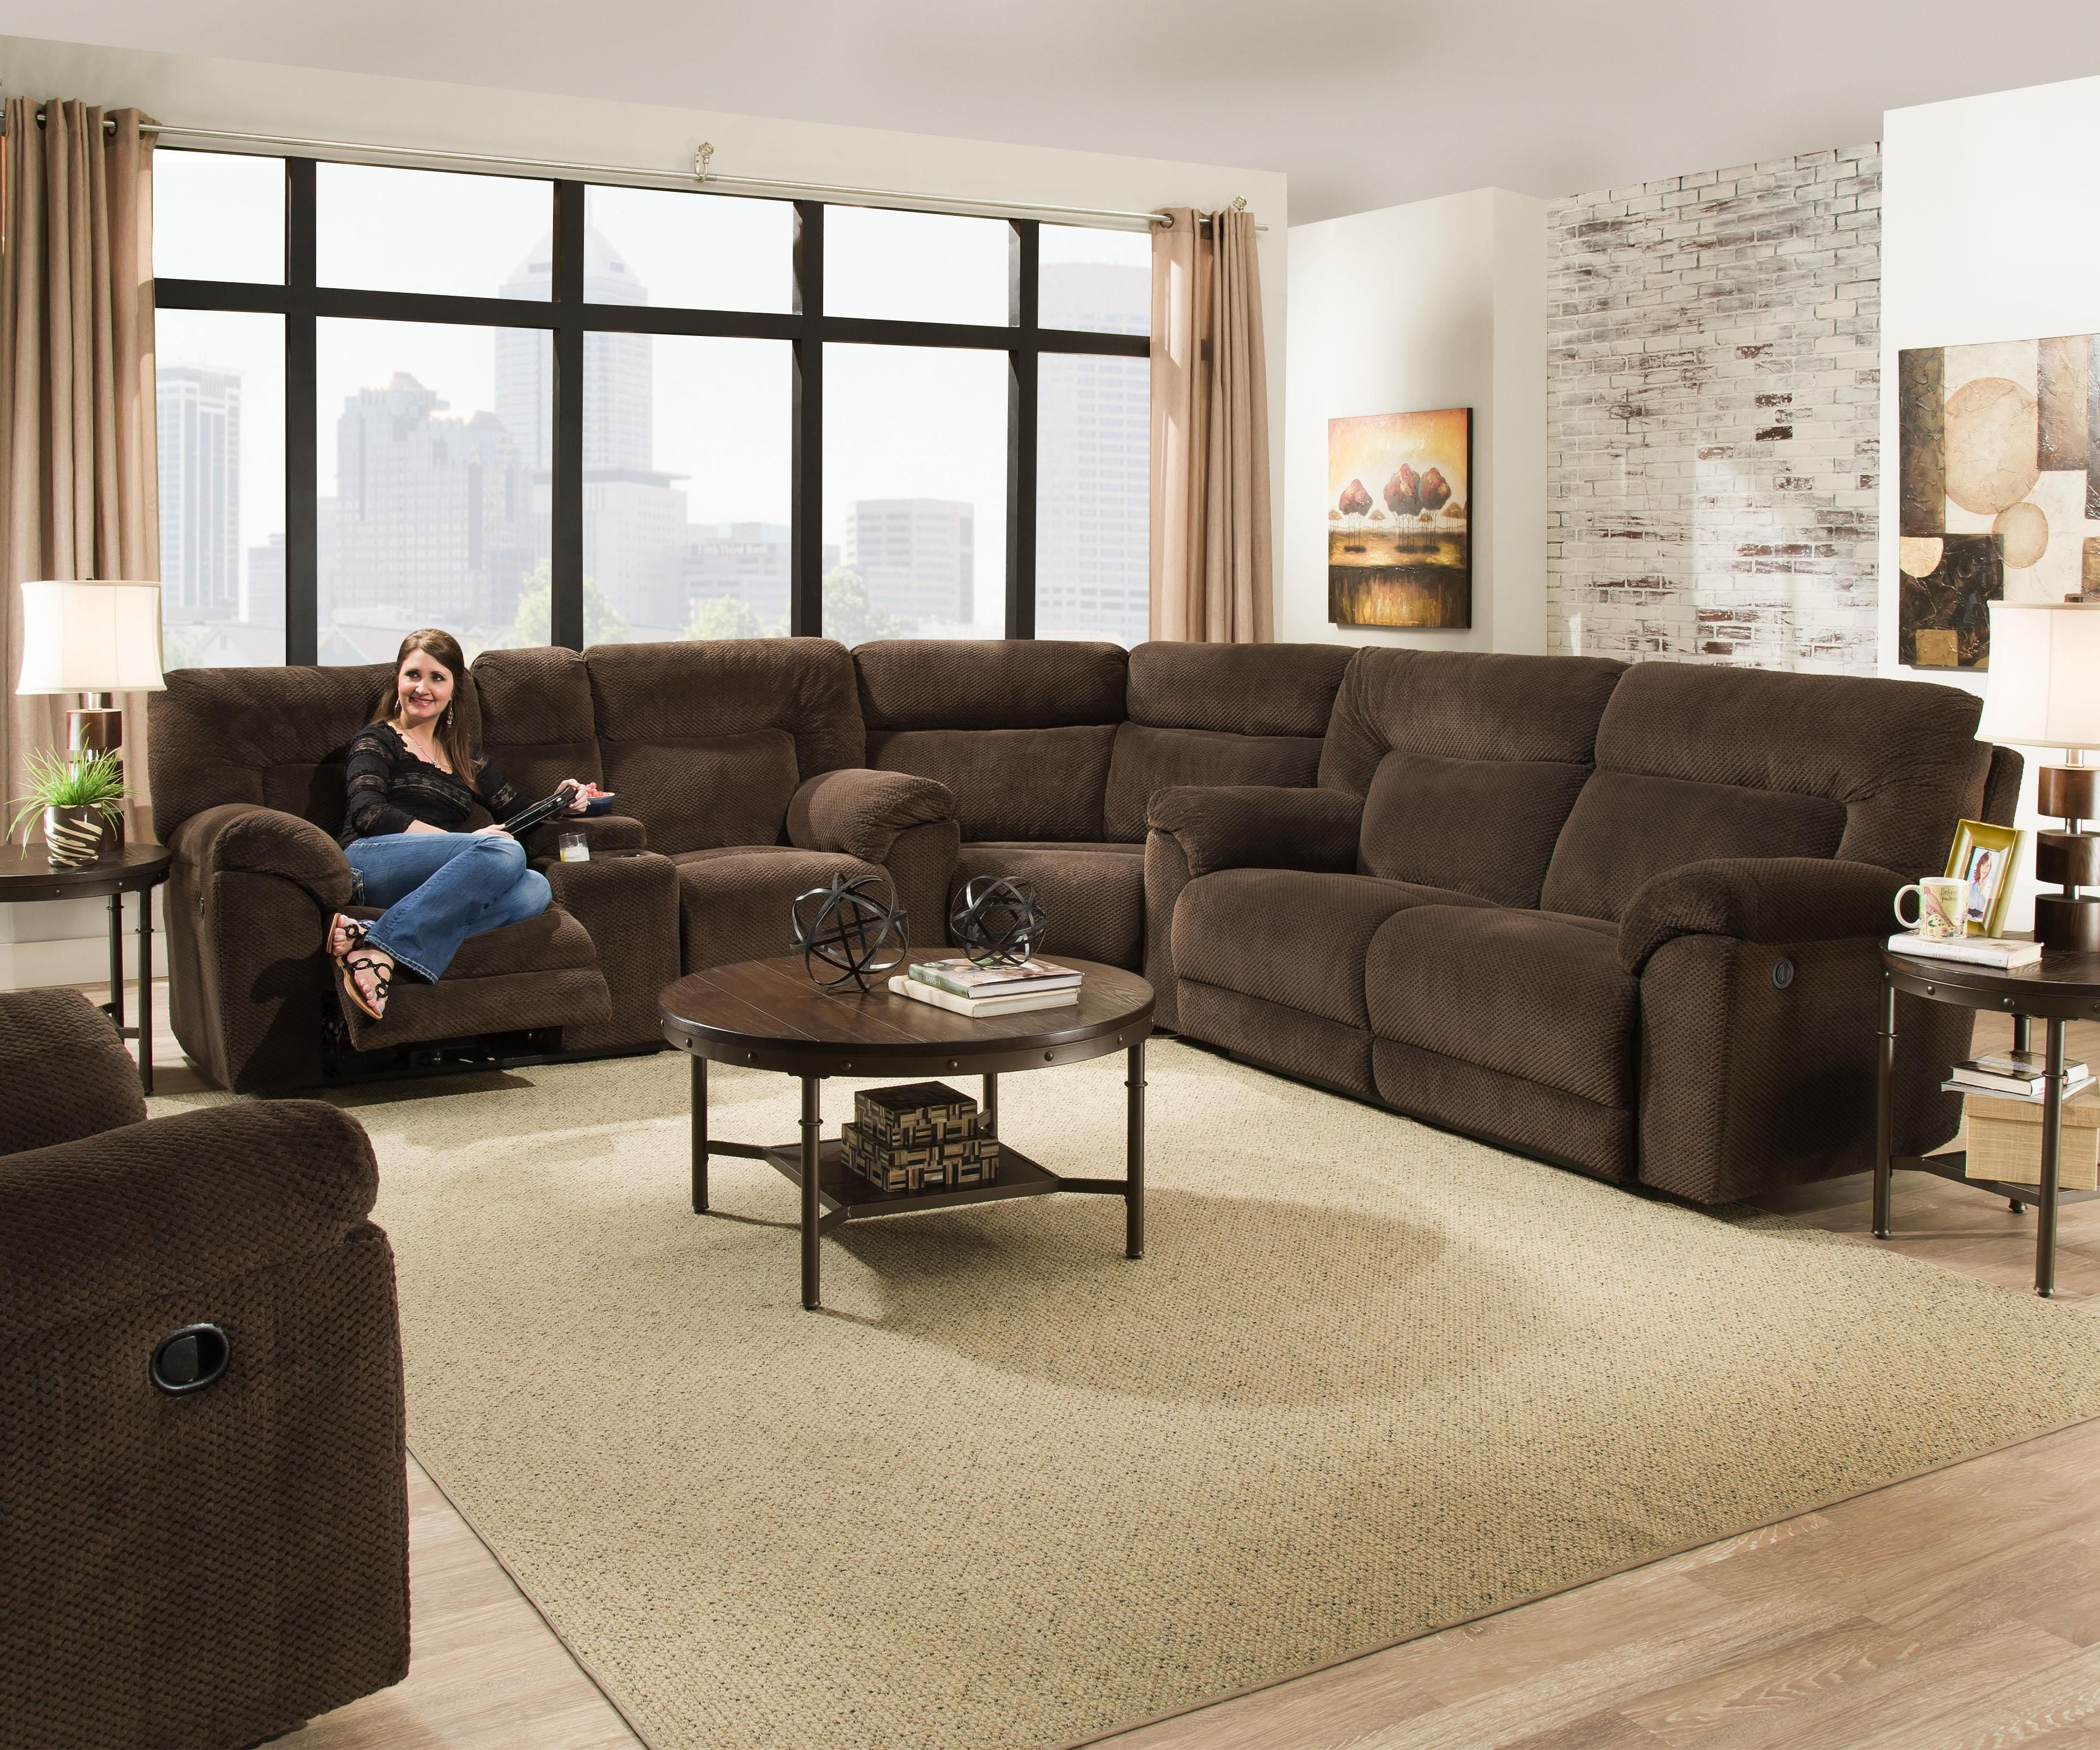 50570 Reclining Sectional Sofa By Simmons Upholstery Reclining Sectional Sectional Sofa Sectional Sofa With Recliner